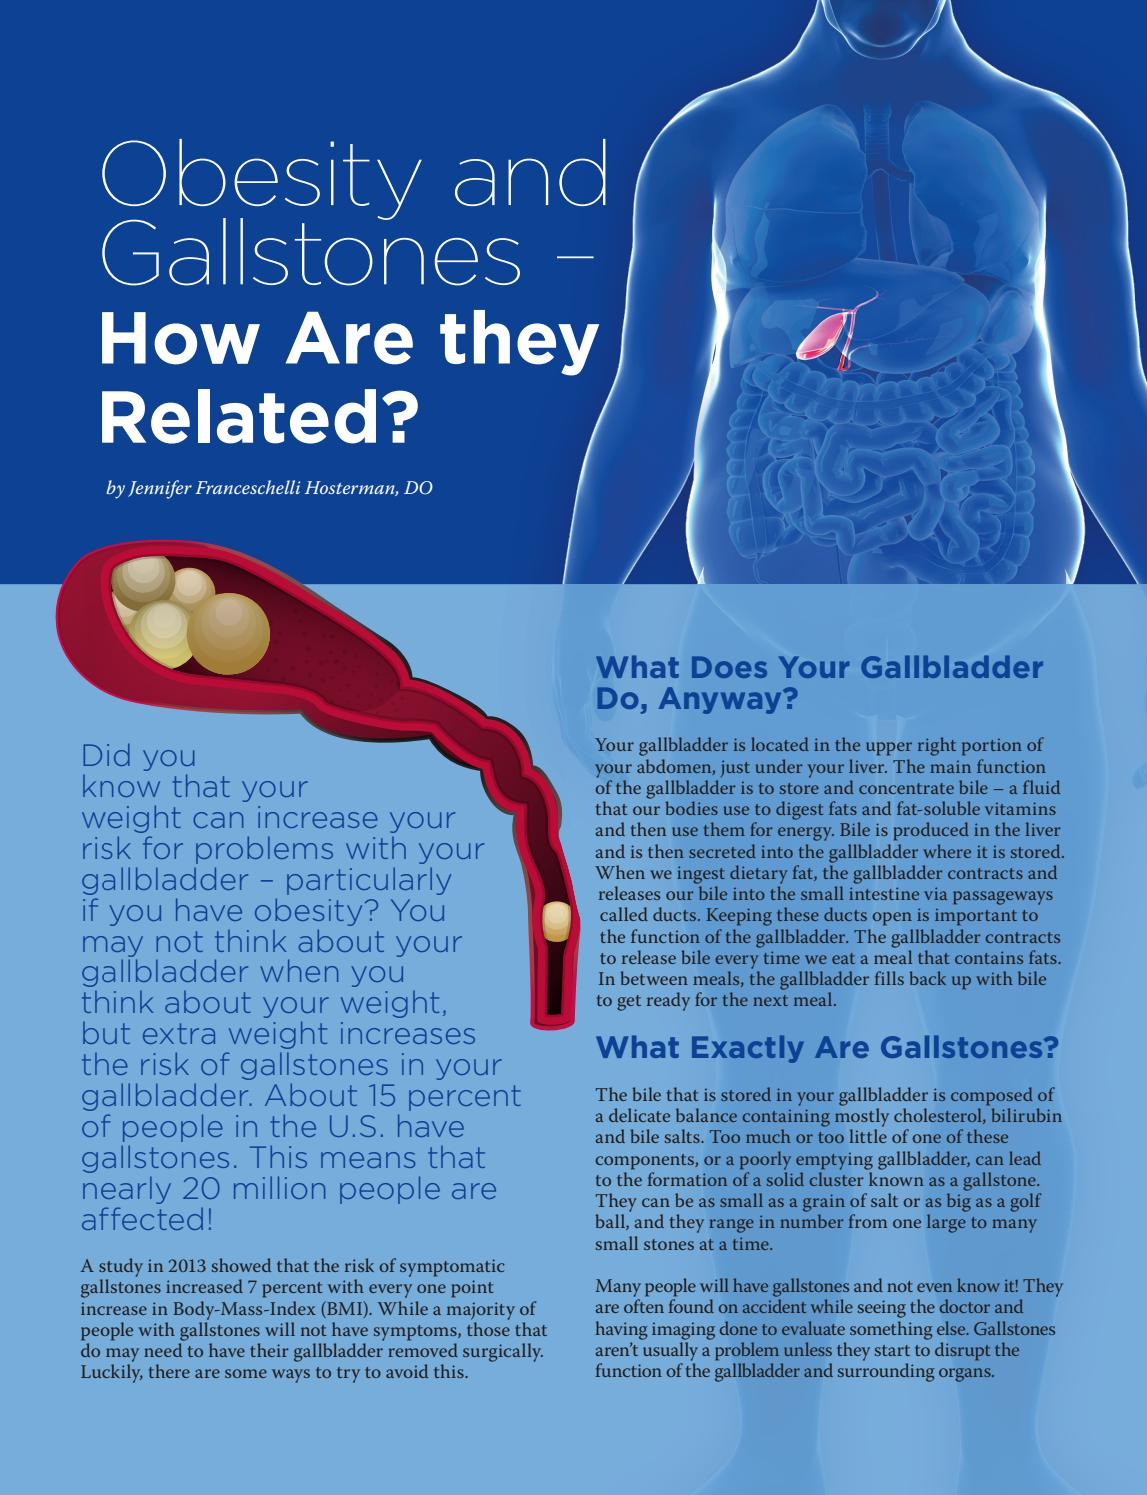 Obesity and gallstones by The GI and Bariatric Nutrition